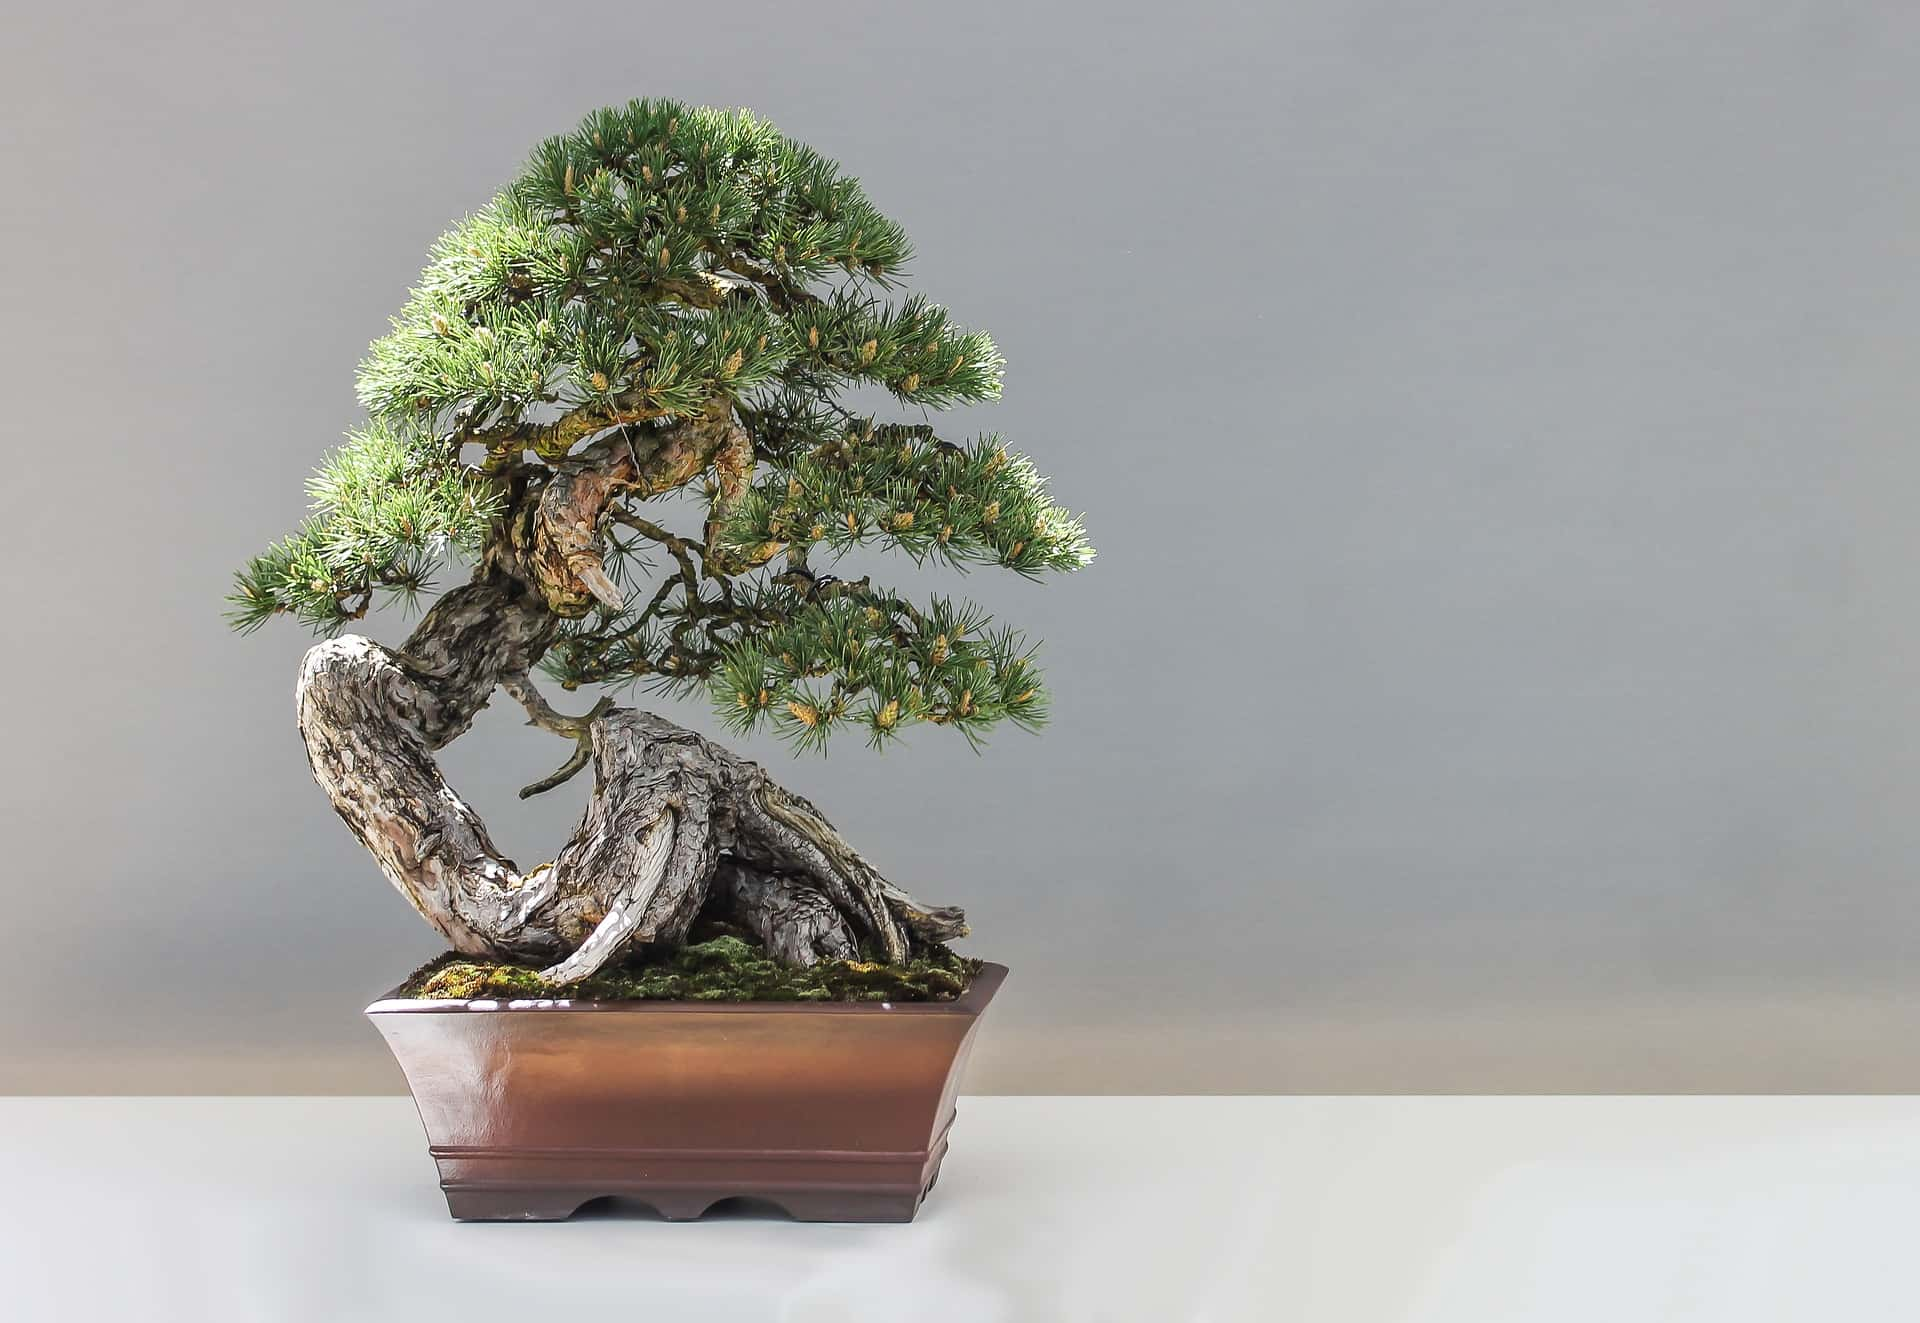 bonsai tree sitting in a pot